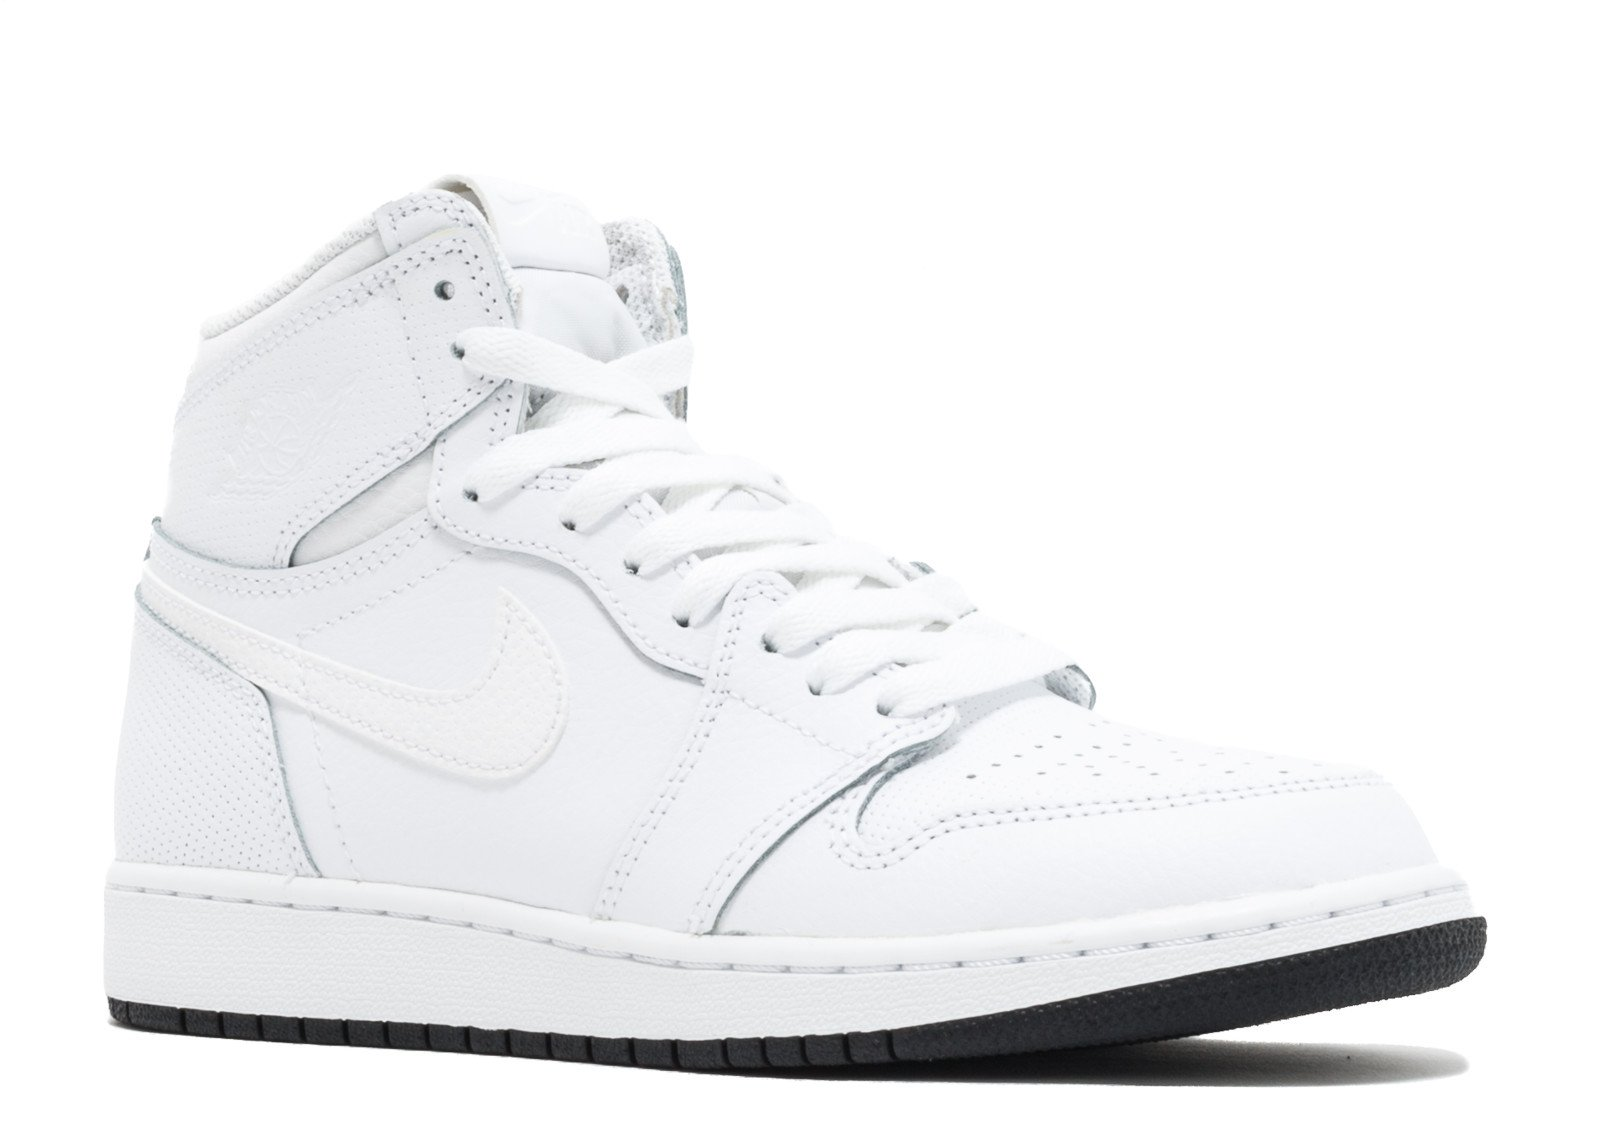 half off bd9e1 a32a3 Galleon - NIKE Kids Air Jordan 1 Retro High OG BG Black White 575441-007 ( Size  5.5Y)